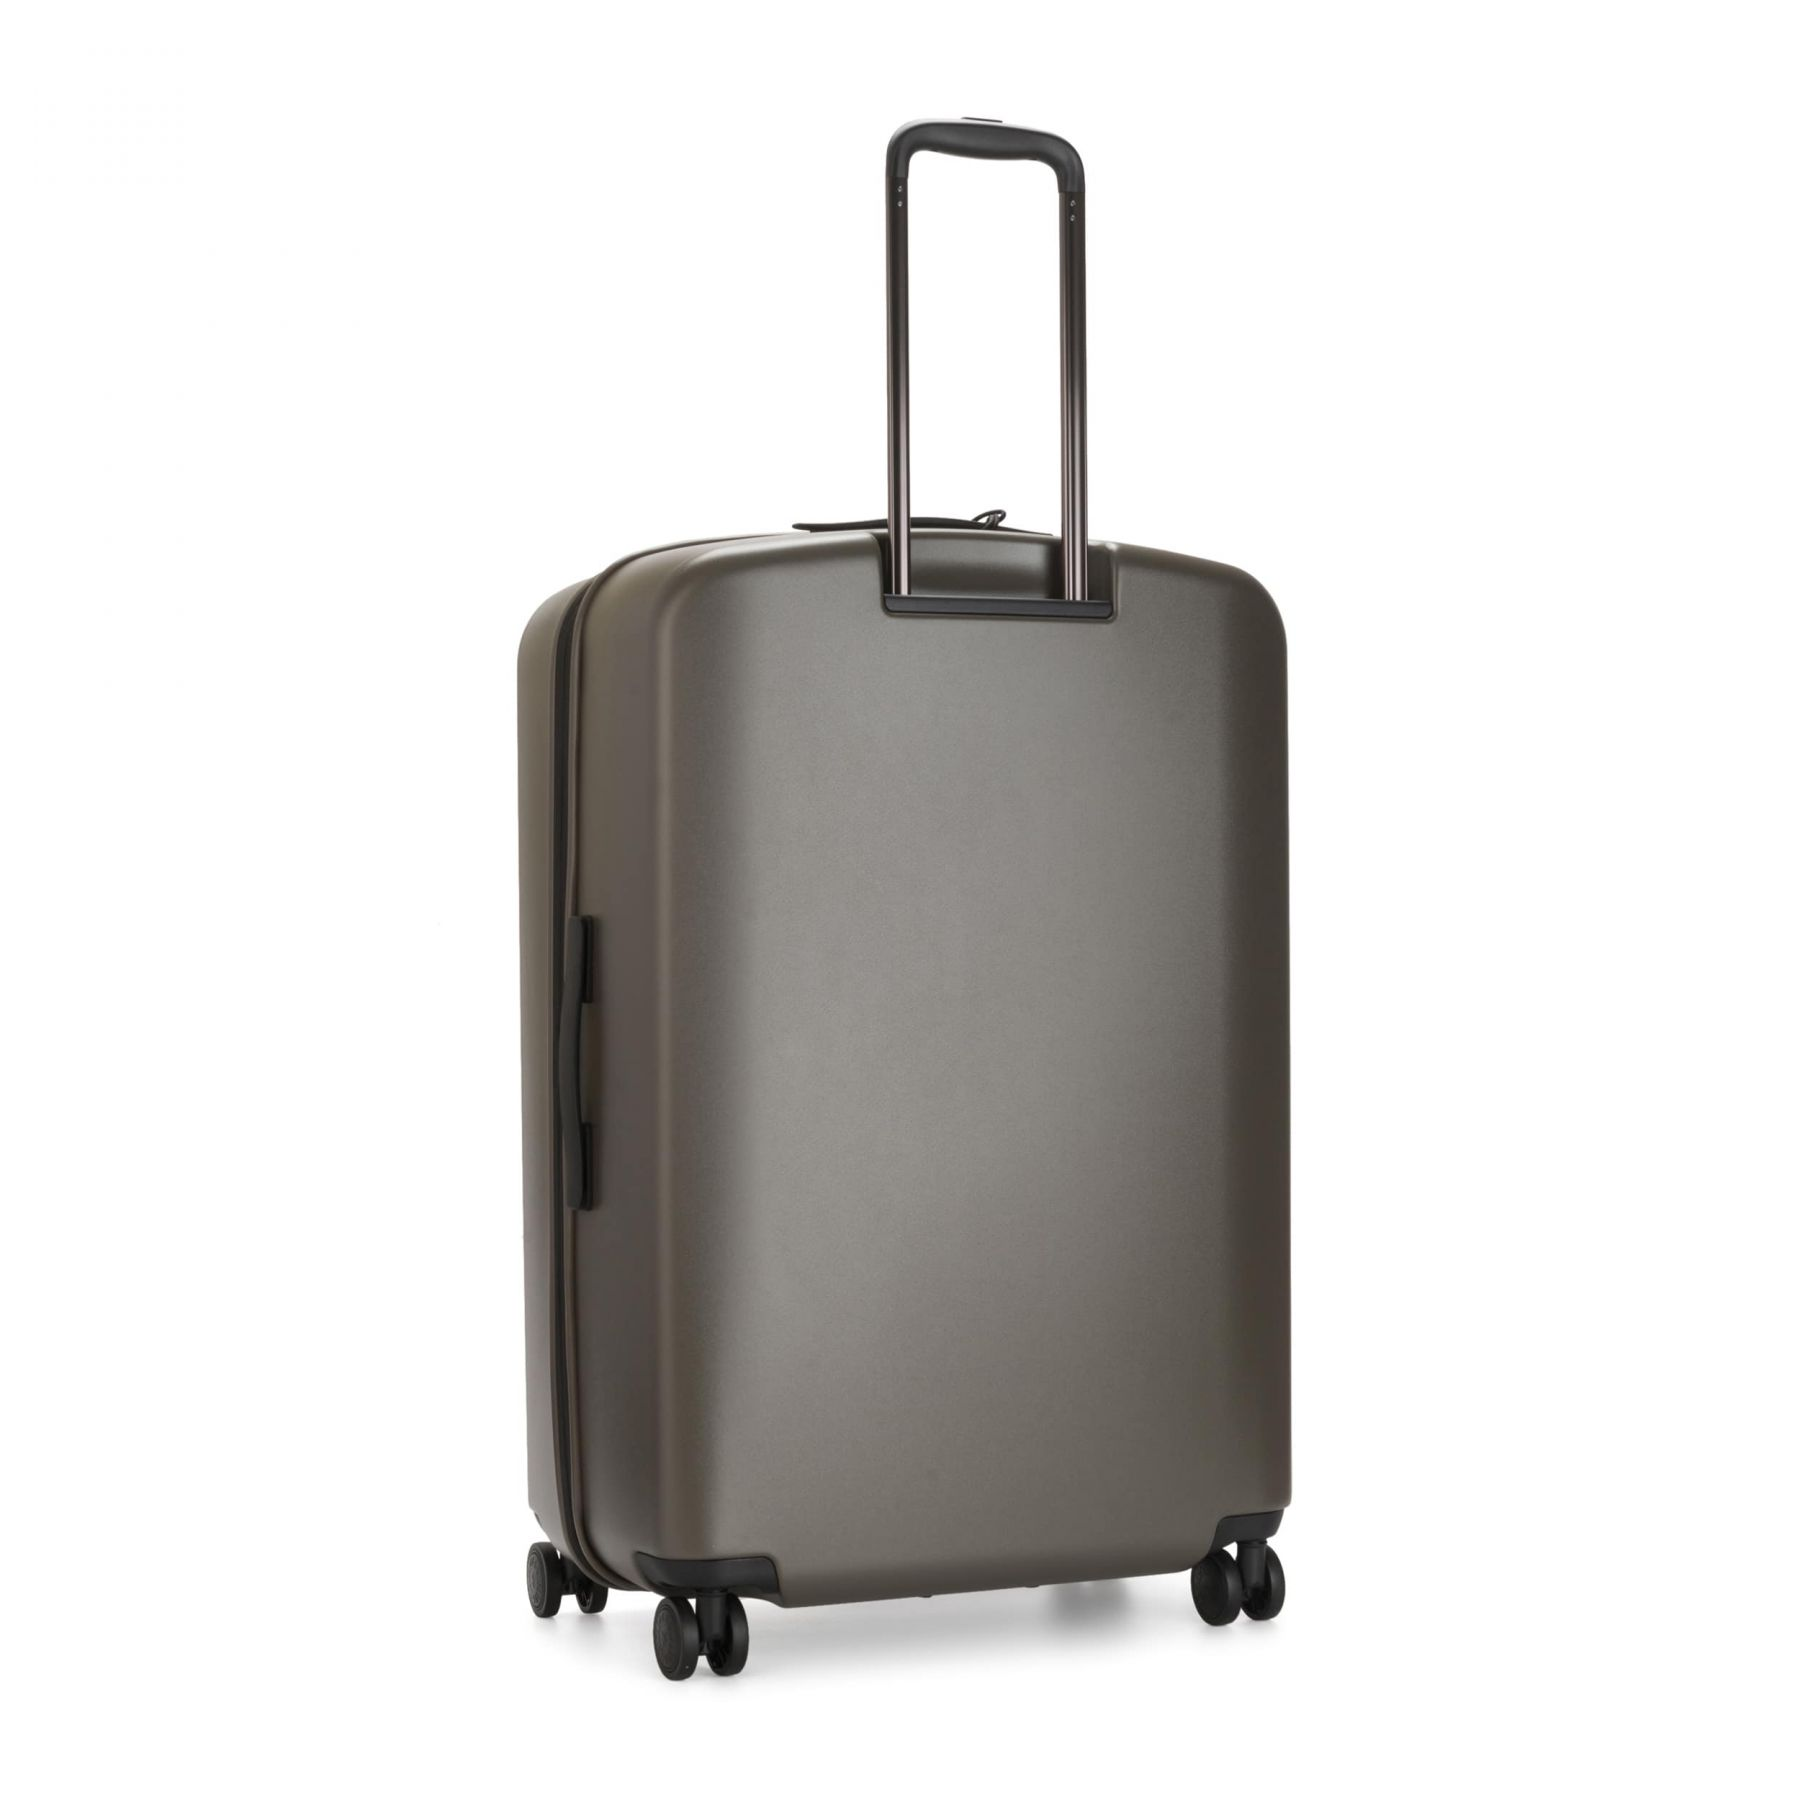 CURIOSITY L Latest Luggage by Kipling - Back view